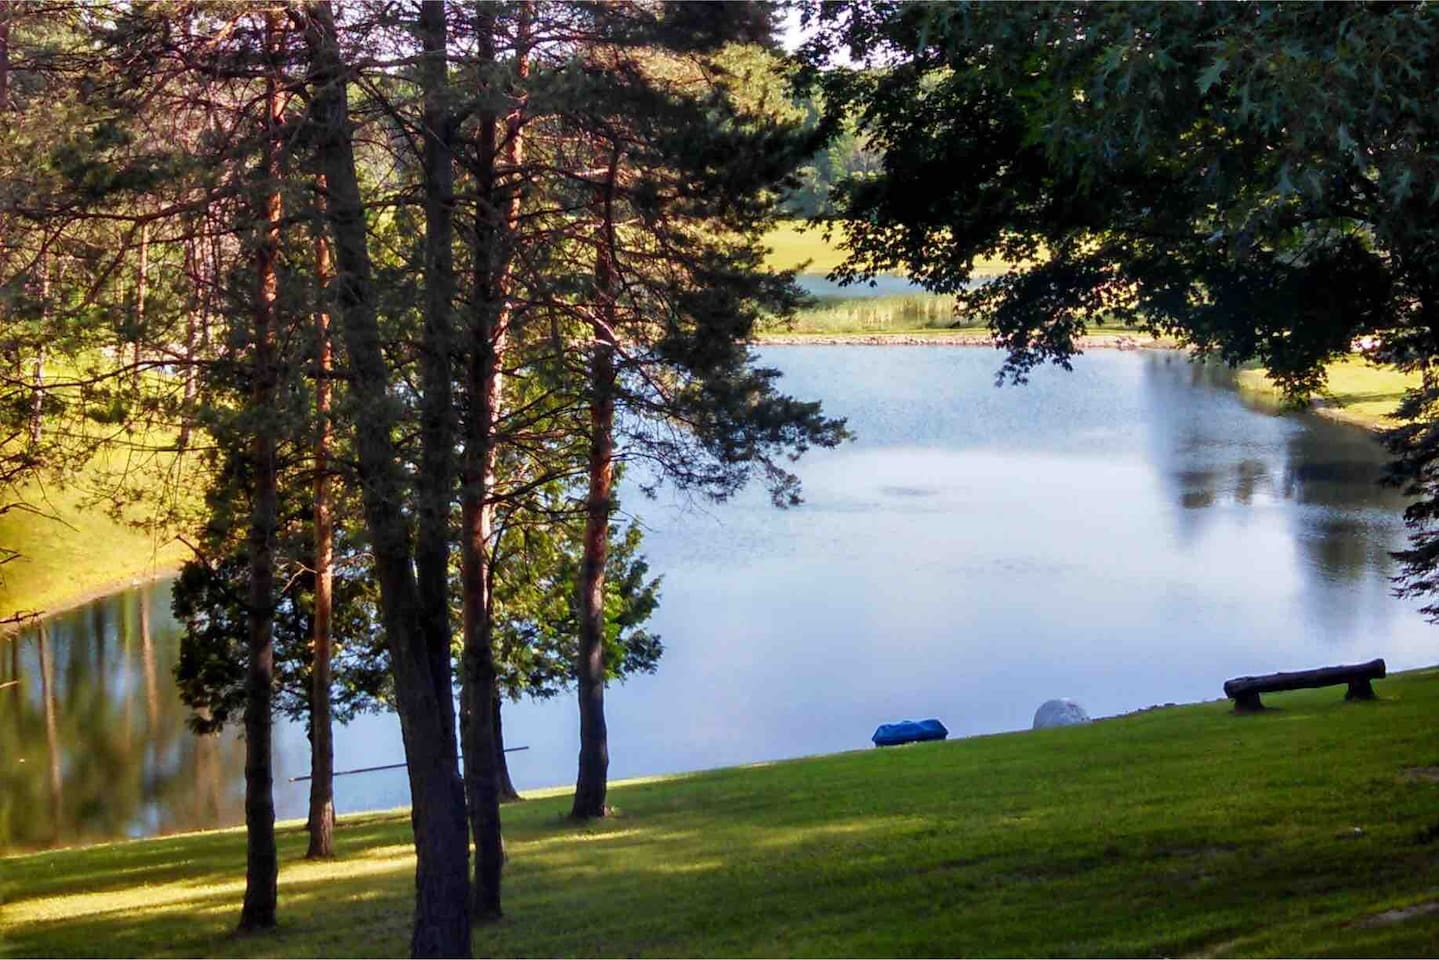 OakHill has two small lakes equaling 3-4 acres of surface water for your enjoyment!